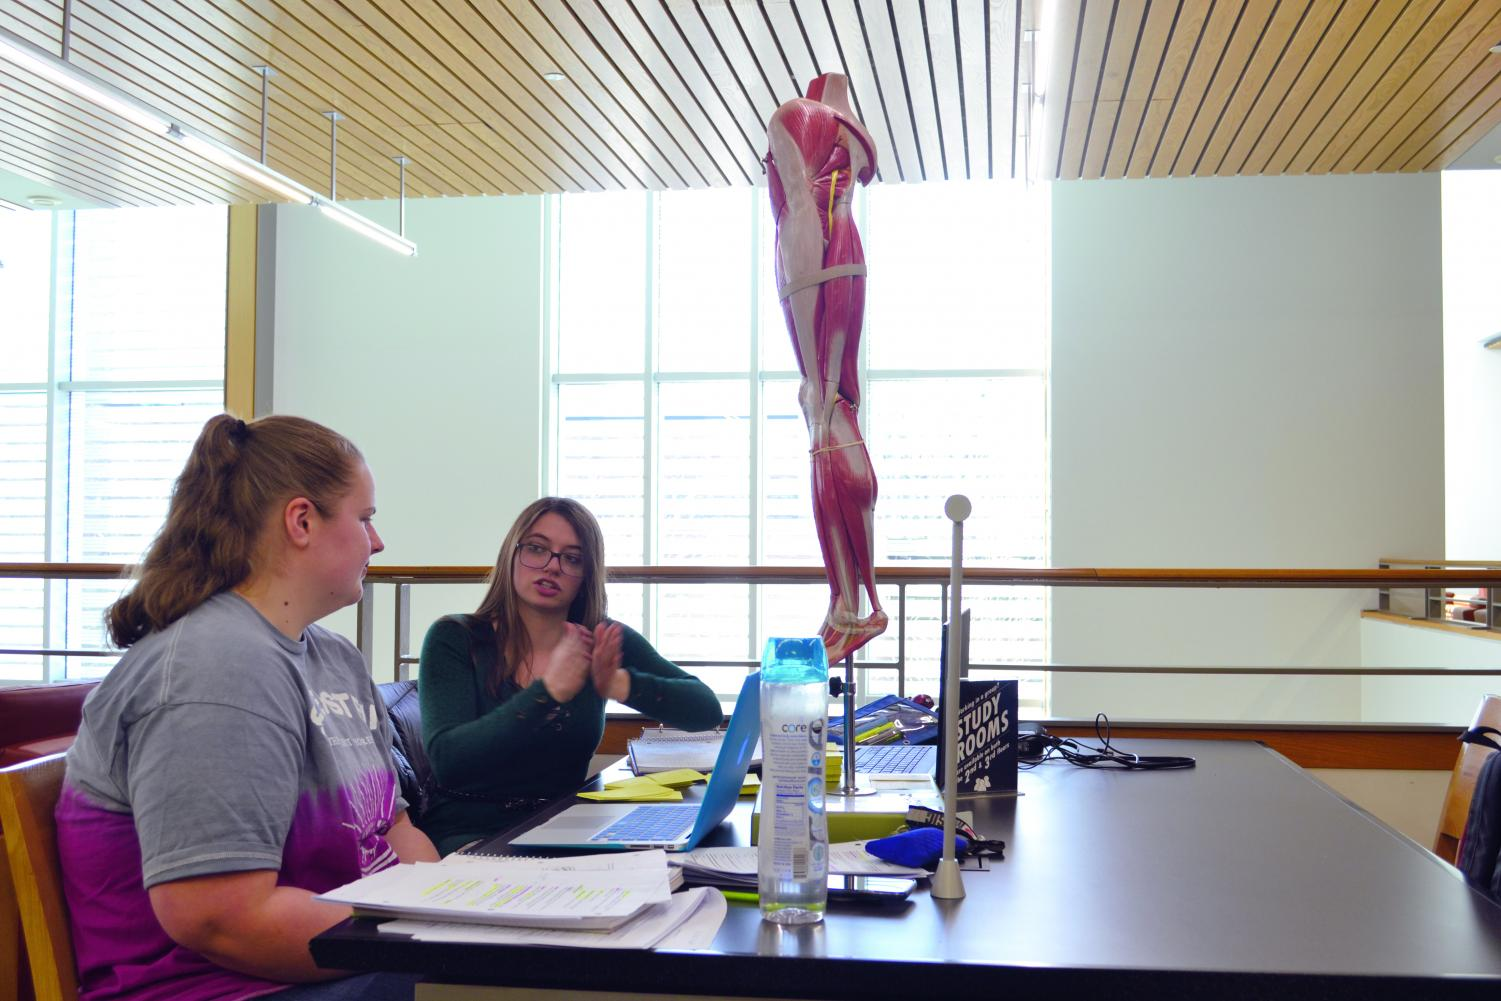 Allison Kral, a first-year phlebotomy student, and Hannah King, a first-year nursing student, took advantage of campus resources by borrowing a model of a leg.